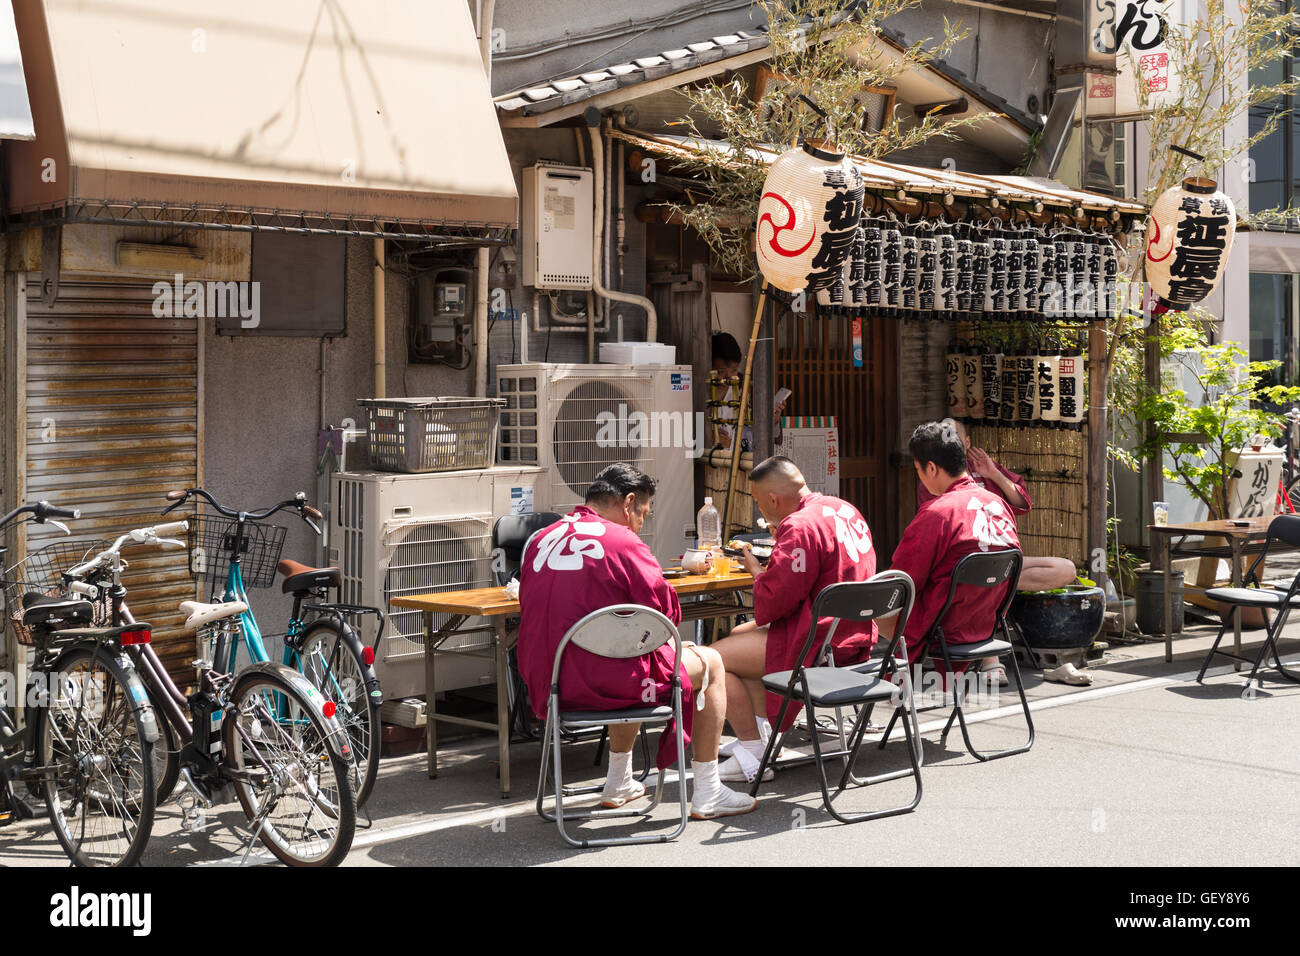 Three men take a break at a small restaurant during the sanja matsuri before continuing with the parade. Asakusa, - Stock Image